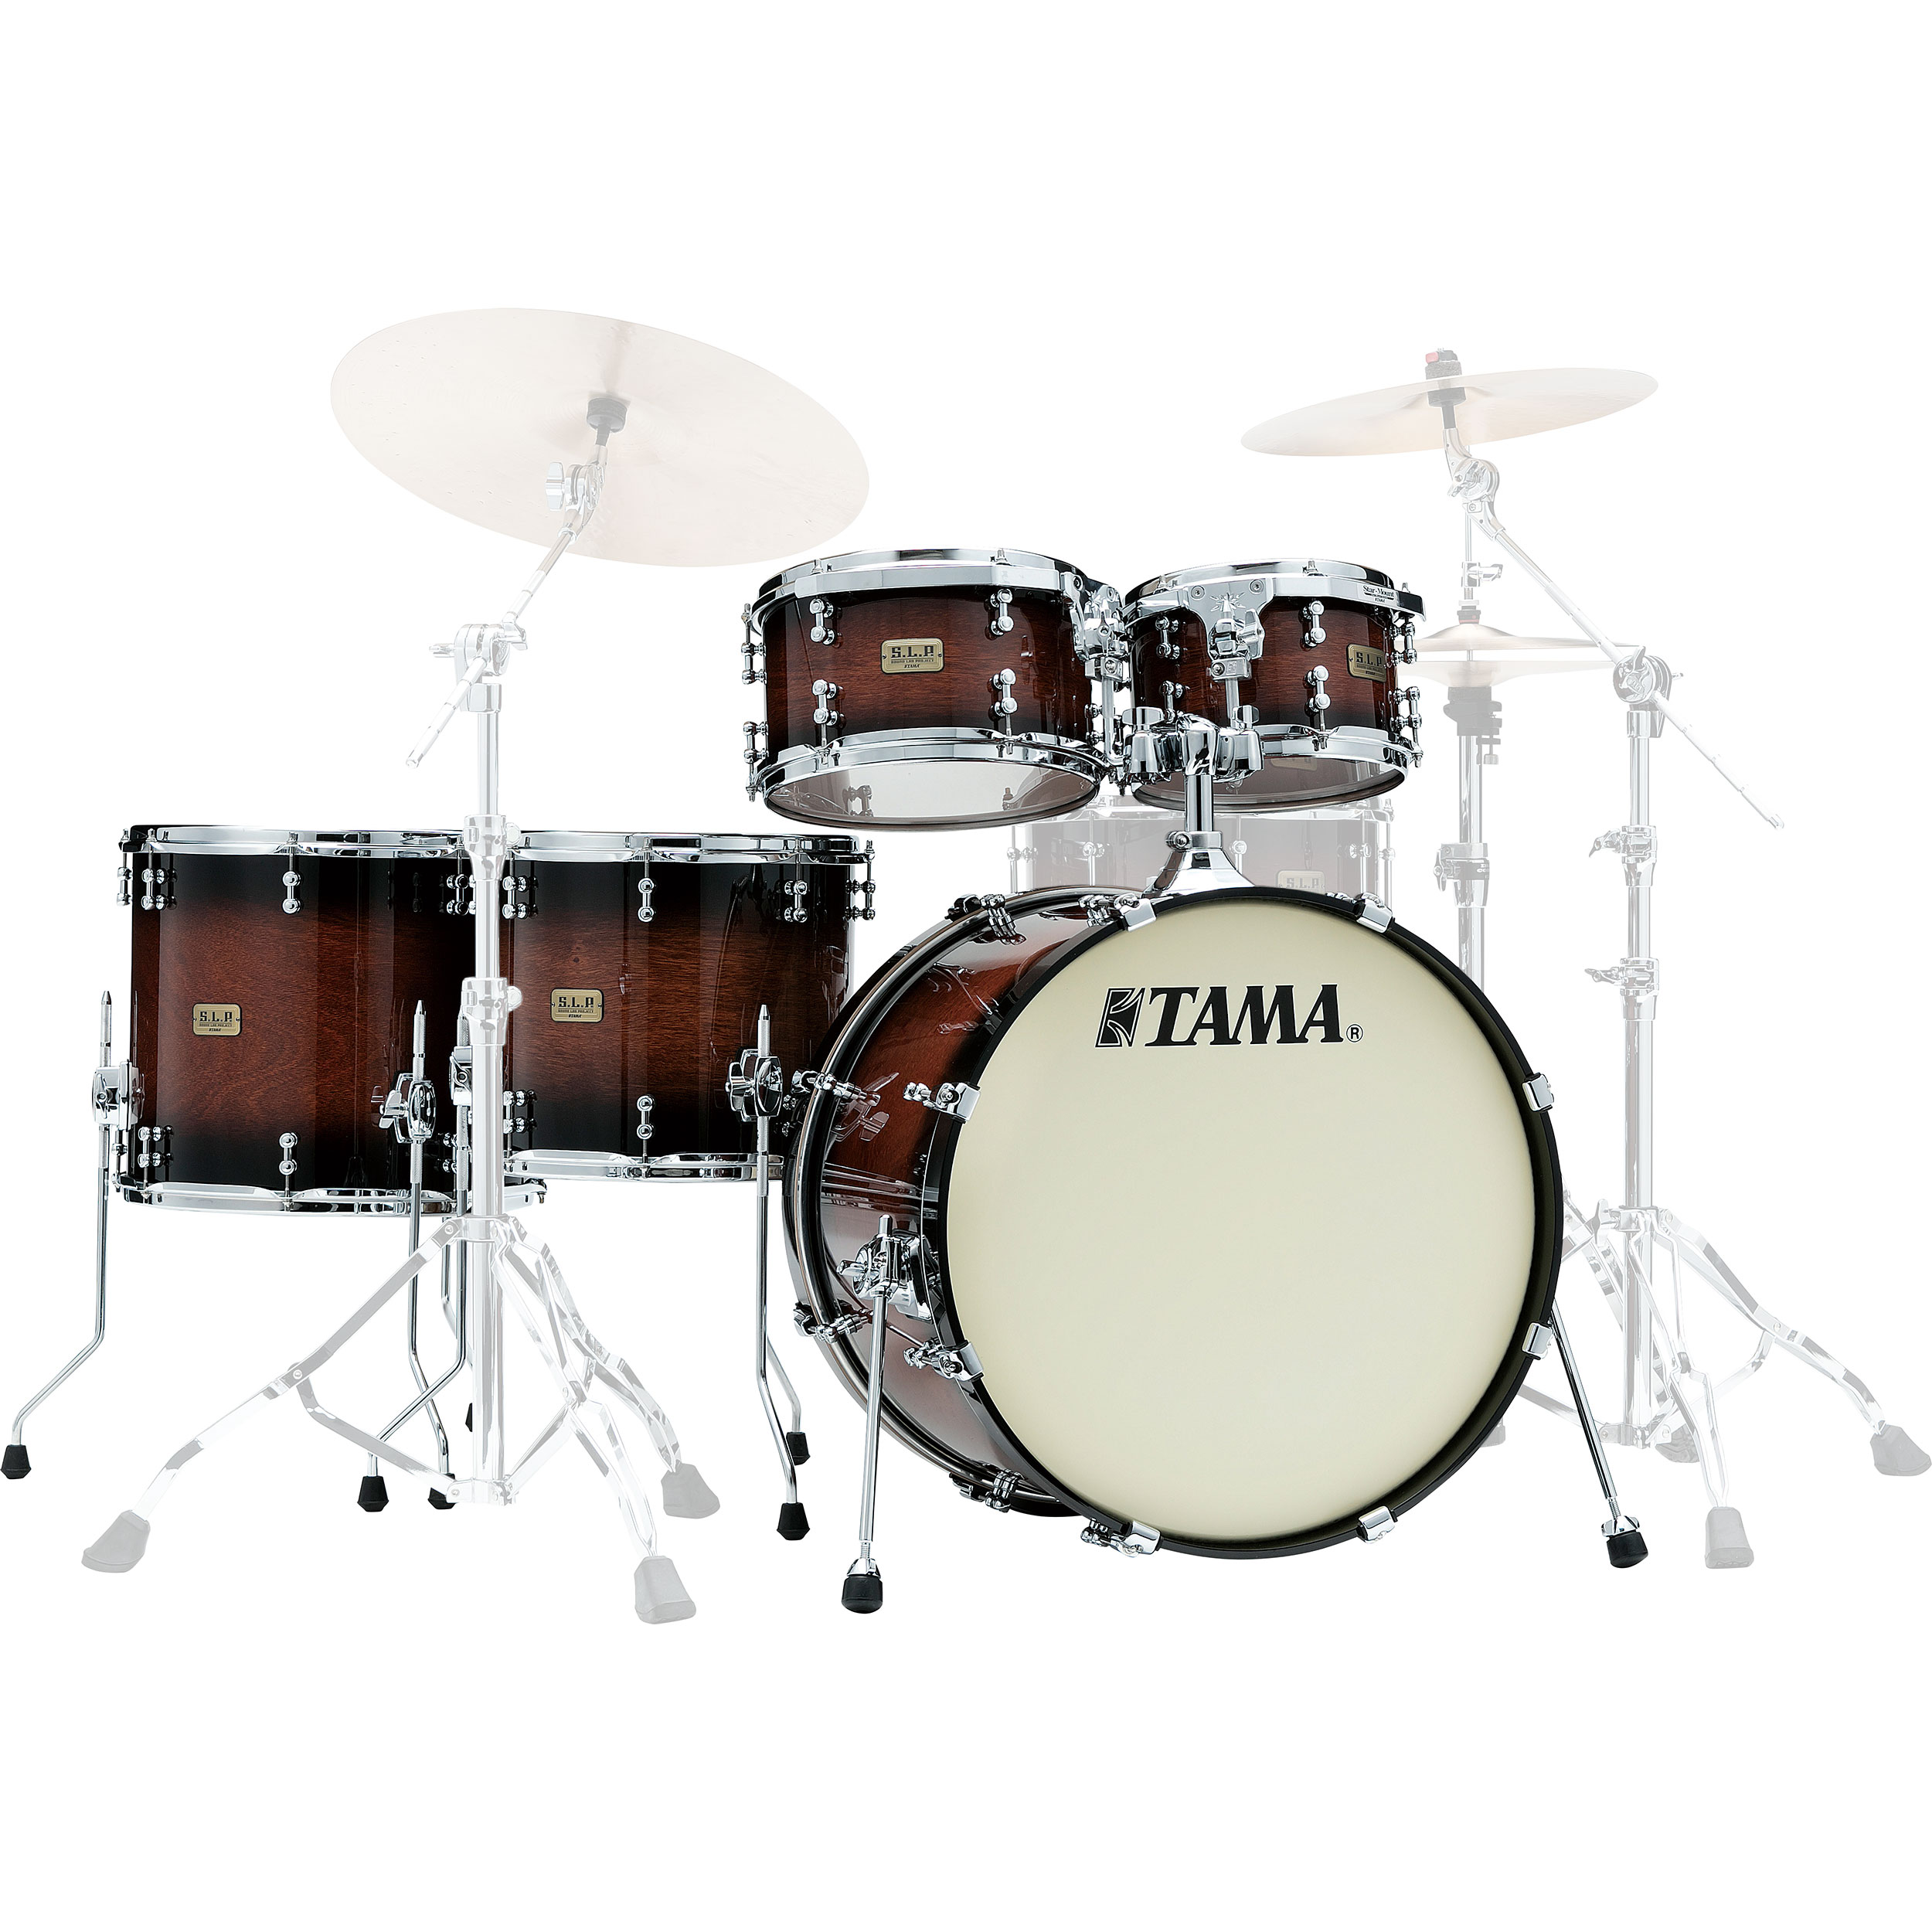 "Tama S.L.P. Dynamic Kapur 5-Piece Drum Set Shell Pack (22"" Bass, 10/12/14/16"" Toms) in Gloss Black Kapur Burst"